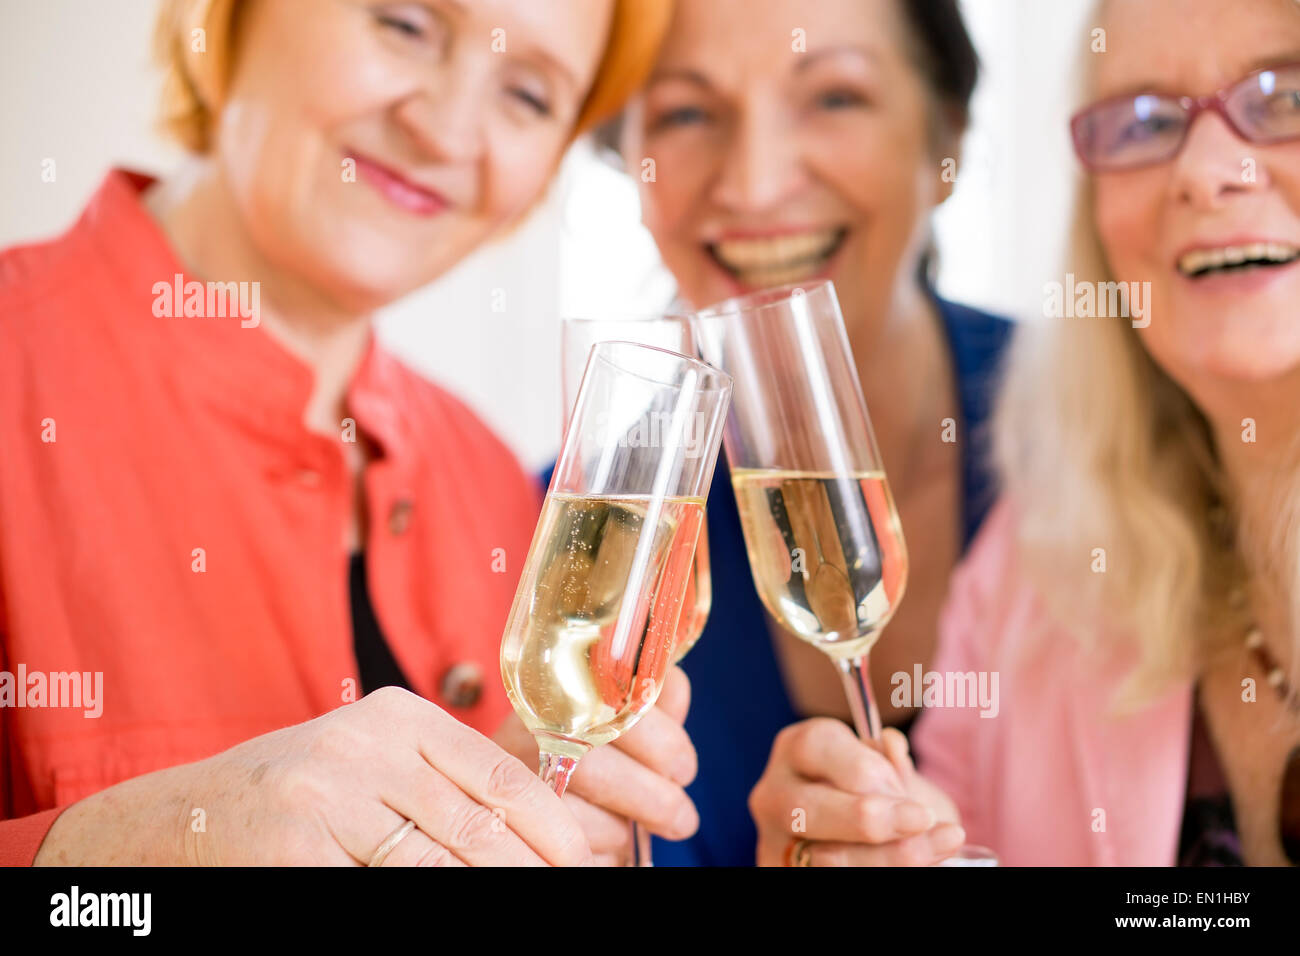 Three Smiling Mom Friends Tossing Glasses of Champagne  Celebrating their Friendship. Captured in Macro. - Stock Image